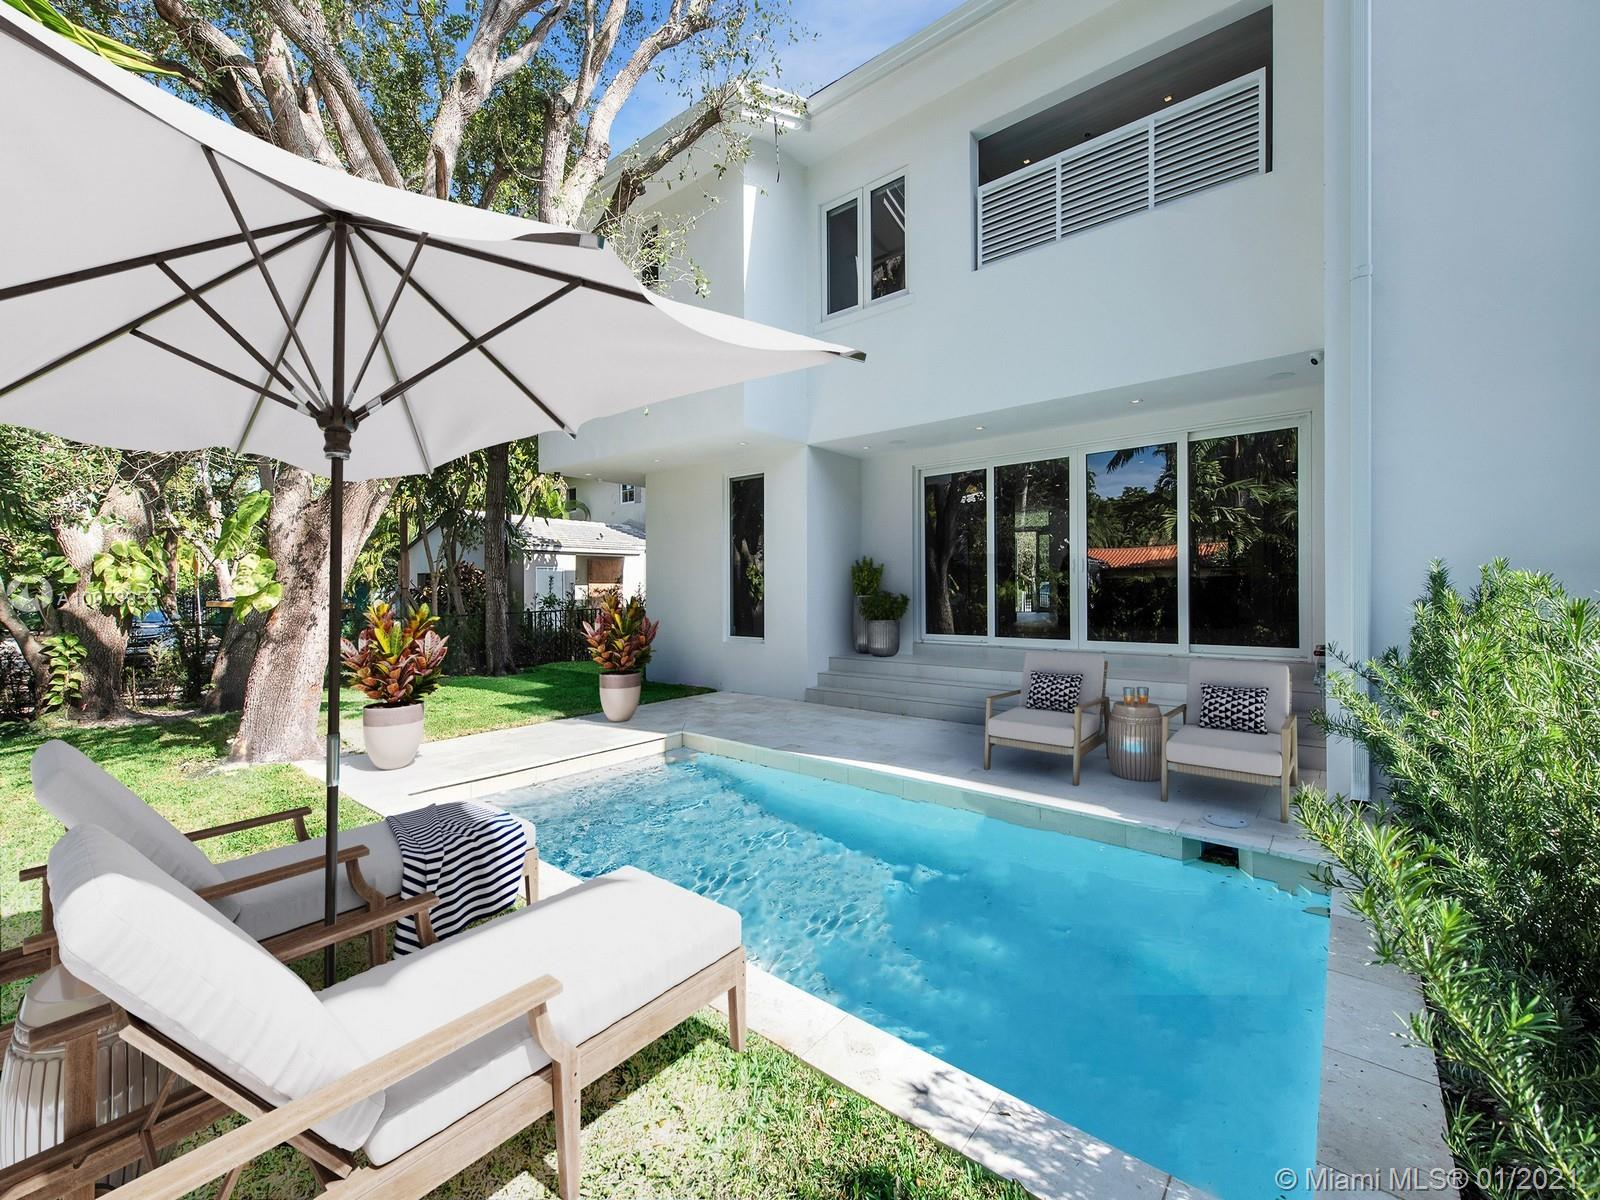 Segovia Villas are located in the heart of Coral Gables, Florida.  These new construction luxury townhomes offer 4B/ 4.5B, private pool, 2 car garage,  elevator, gourmet kitchen, high end finishes in a modern-transitional setting with 3,600 sq. ft. under air. and 4,200 sq. ft. adjusted area.  These elegant, private and gated townhouses boast elegant high ceilings, spa inspired master